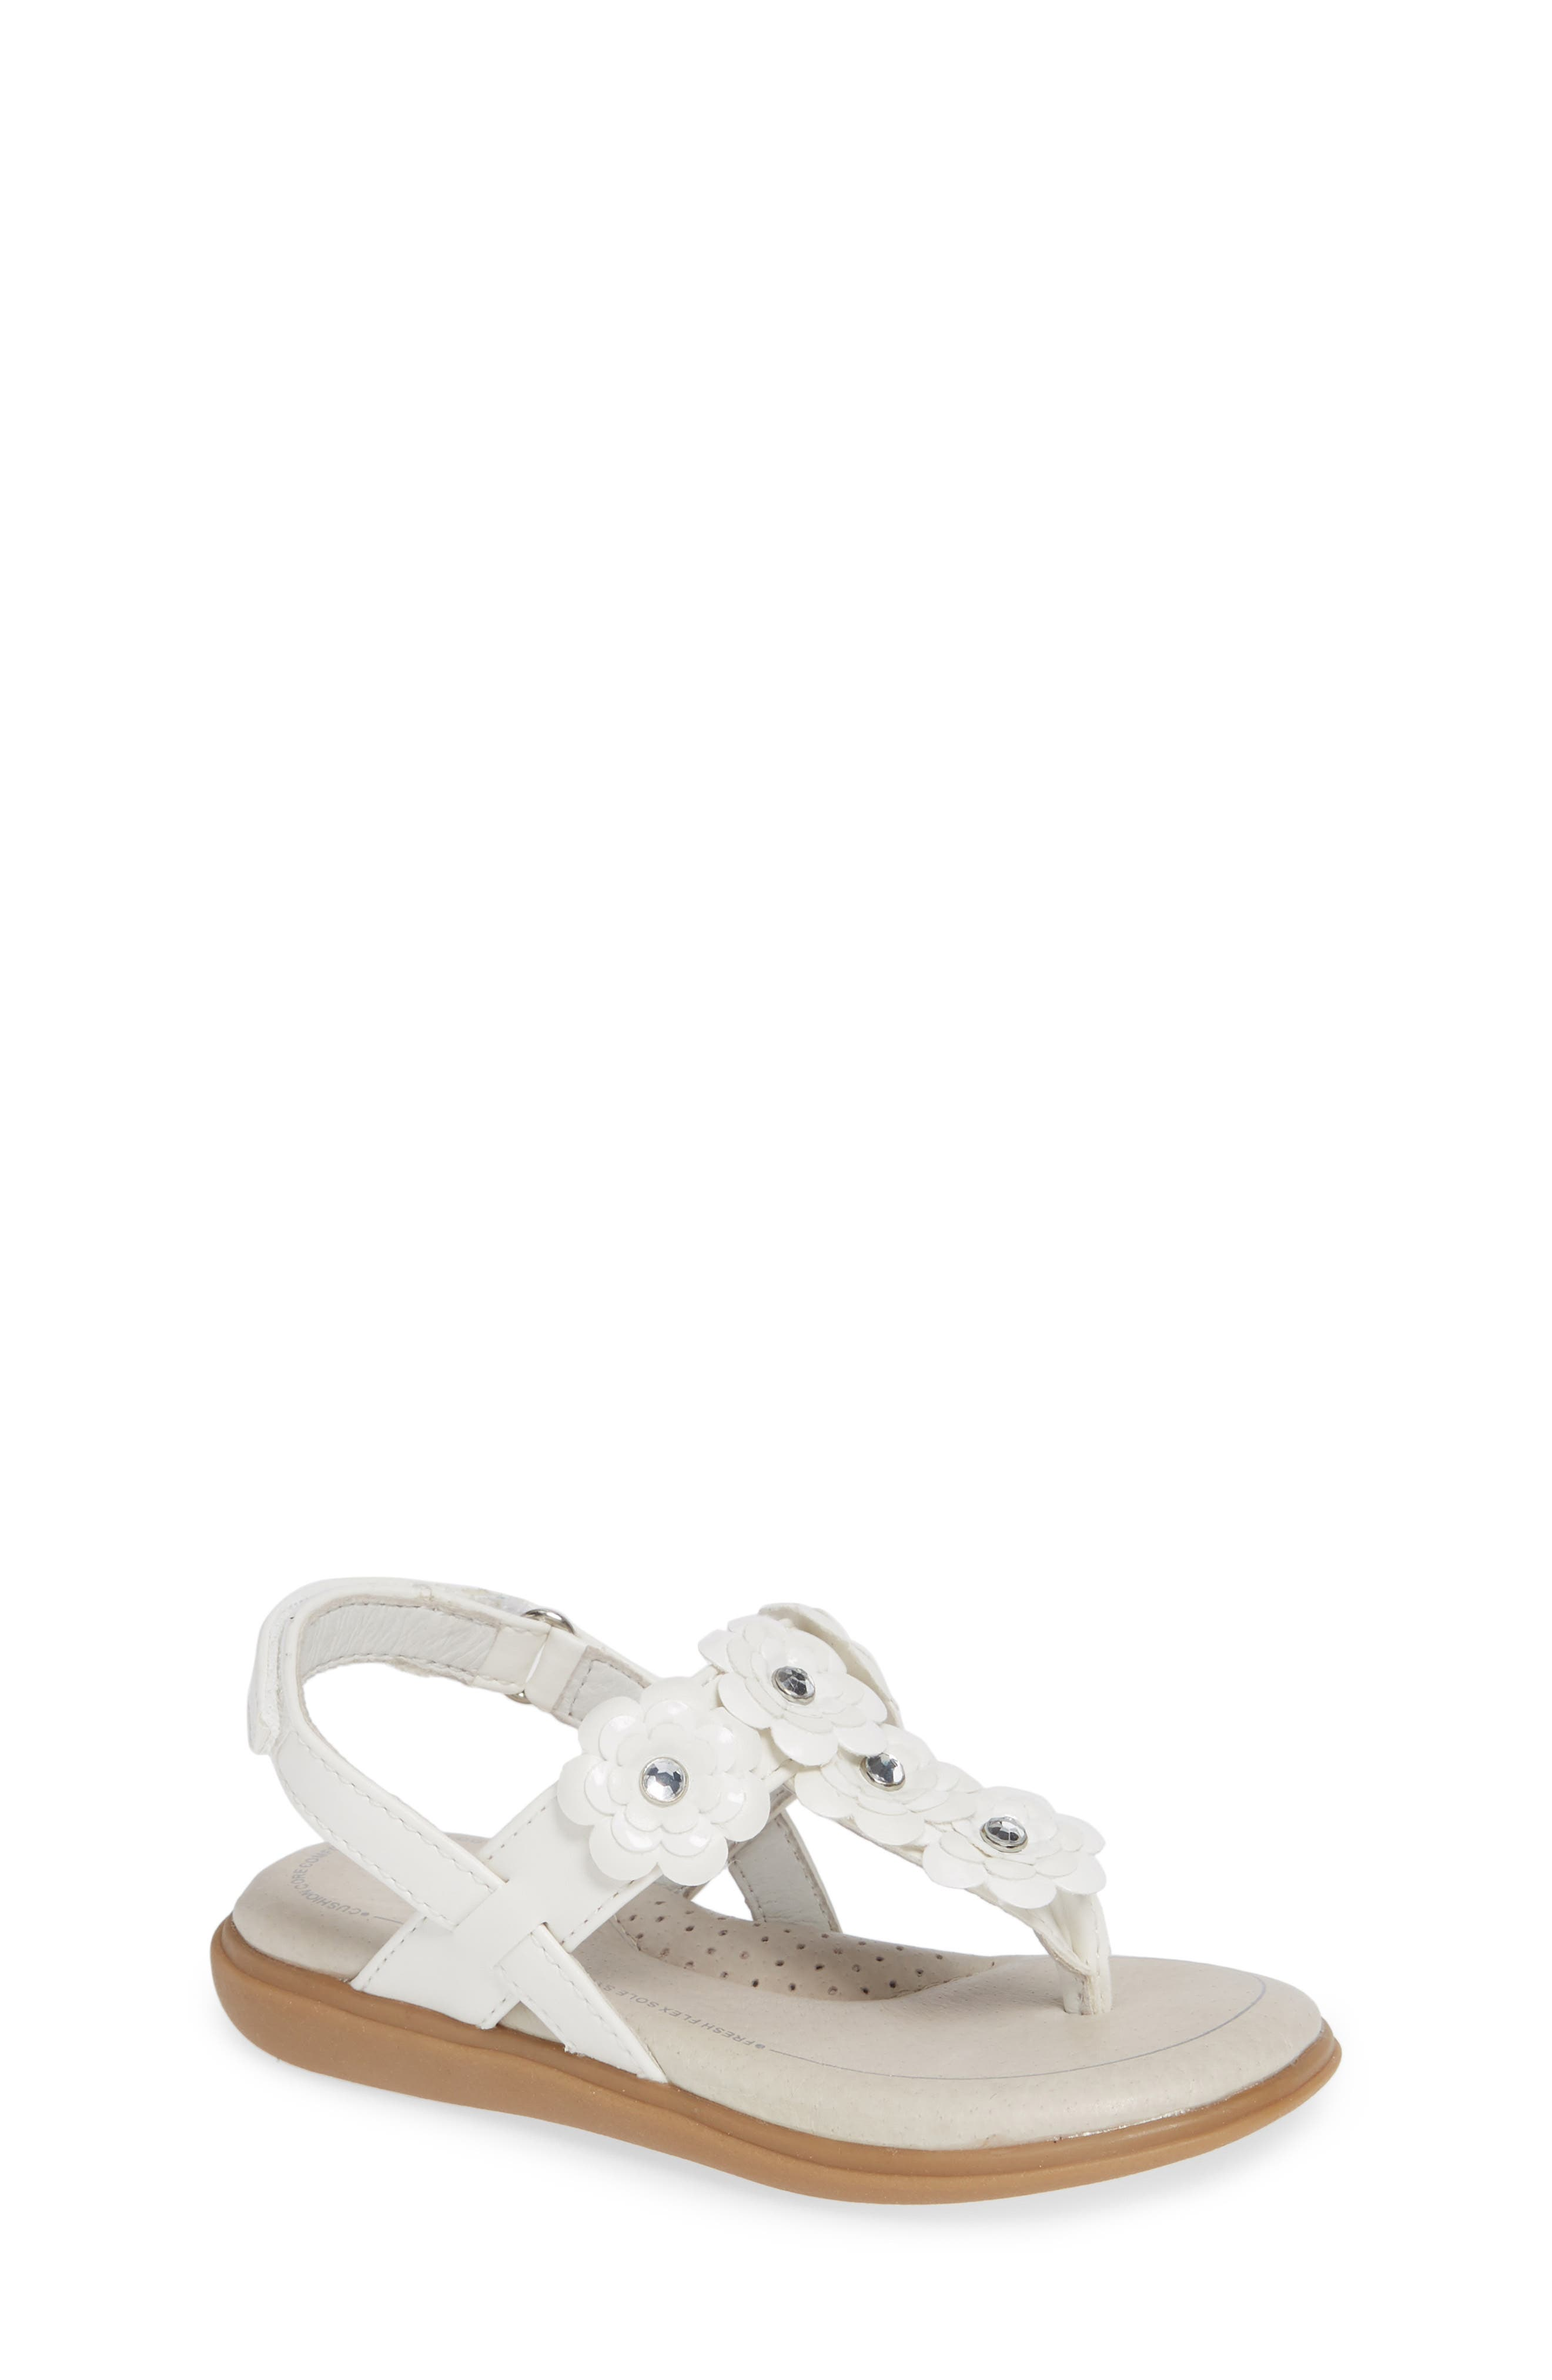 SOLE PLAY, Cora Floral Embellished Sandal, Main thumbnail 1, color, WHITE